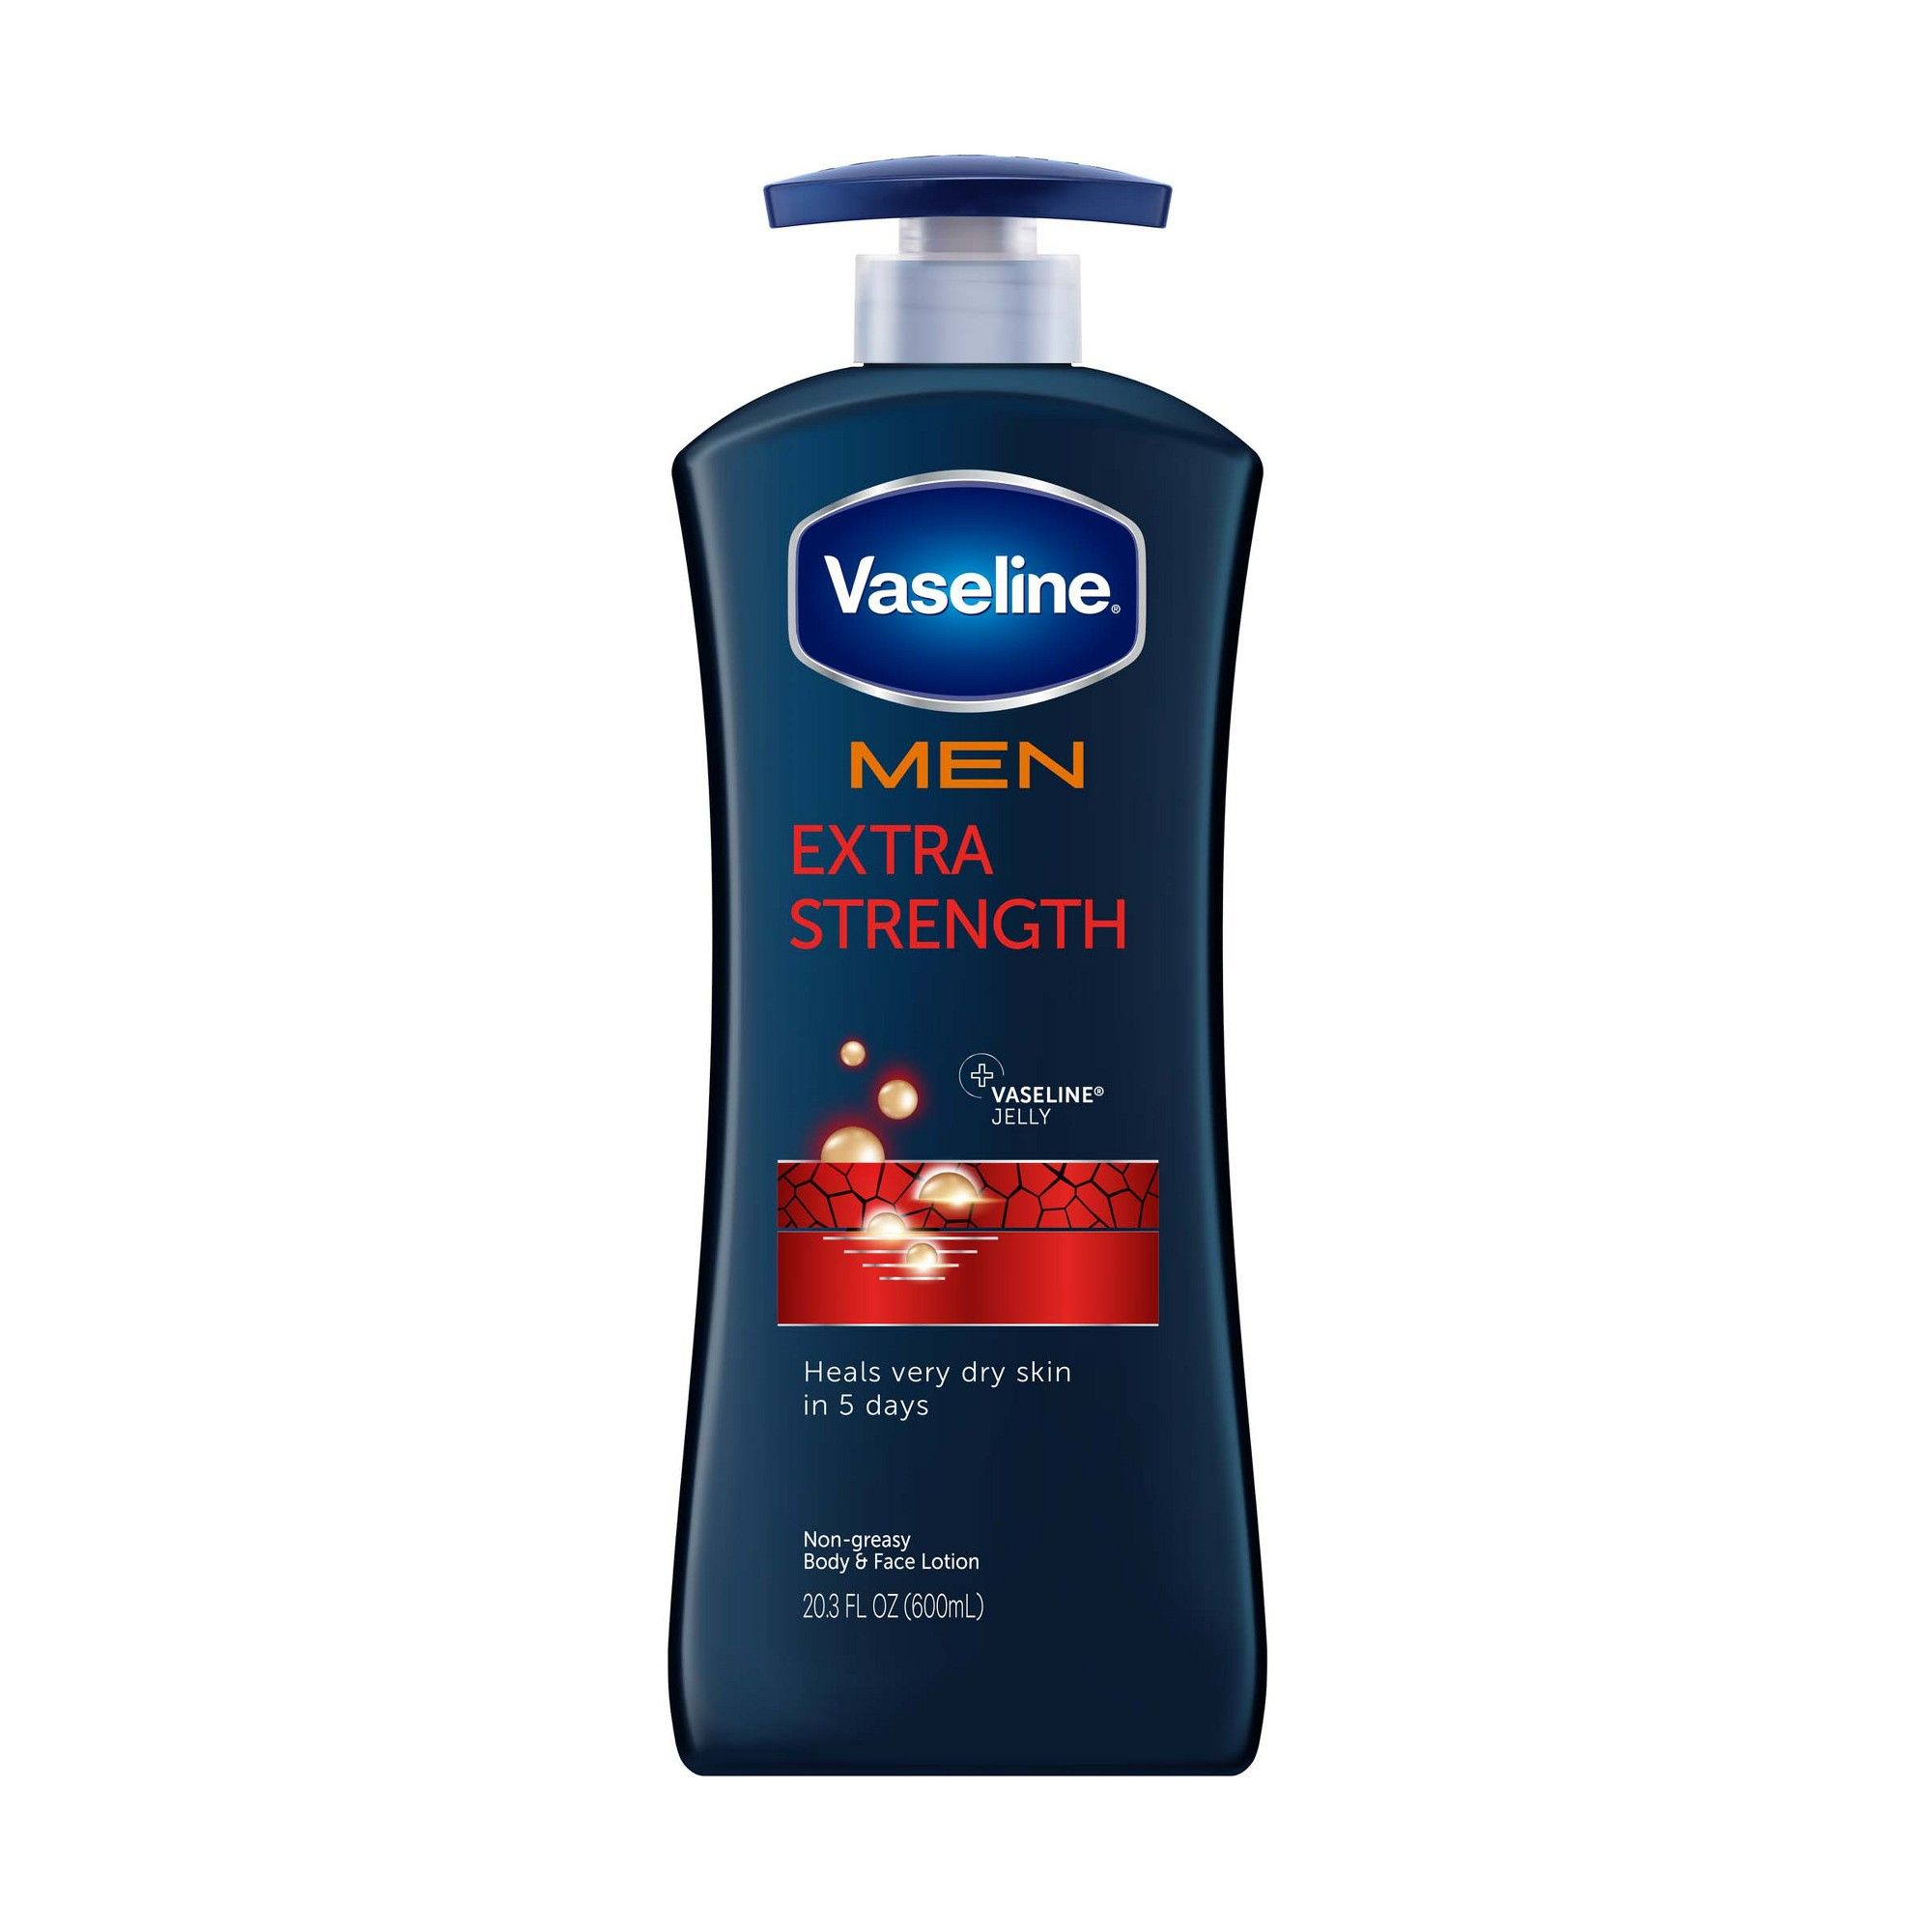 Vaseline Men S Extra Strength Hand And Body Lotion 20 3oz Body Lotion Cream Lotion For Dry Skin Healing Dry Skin